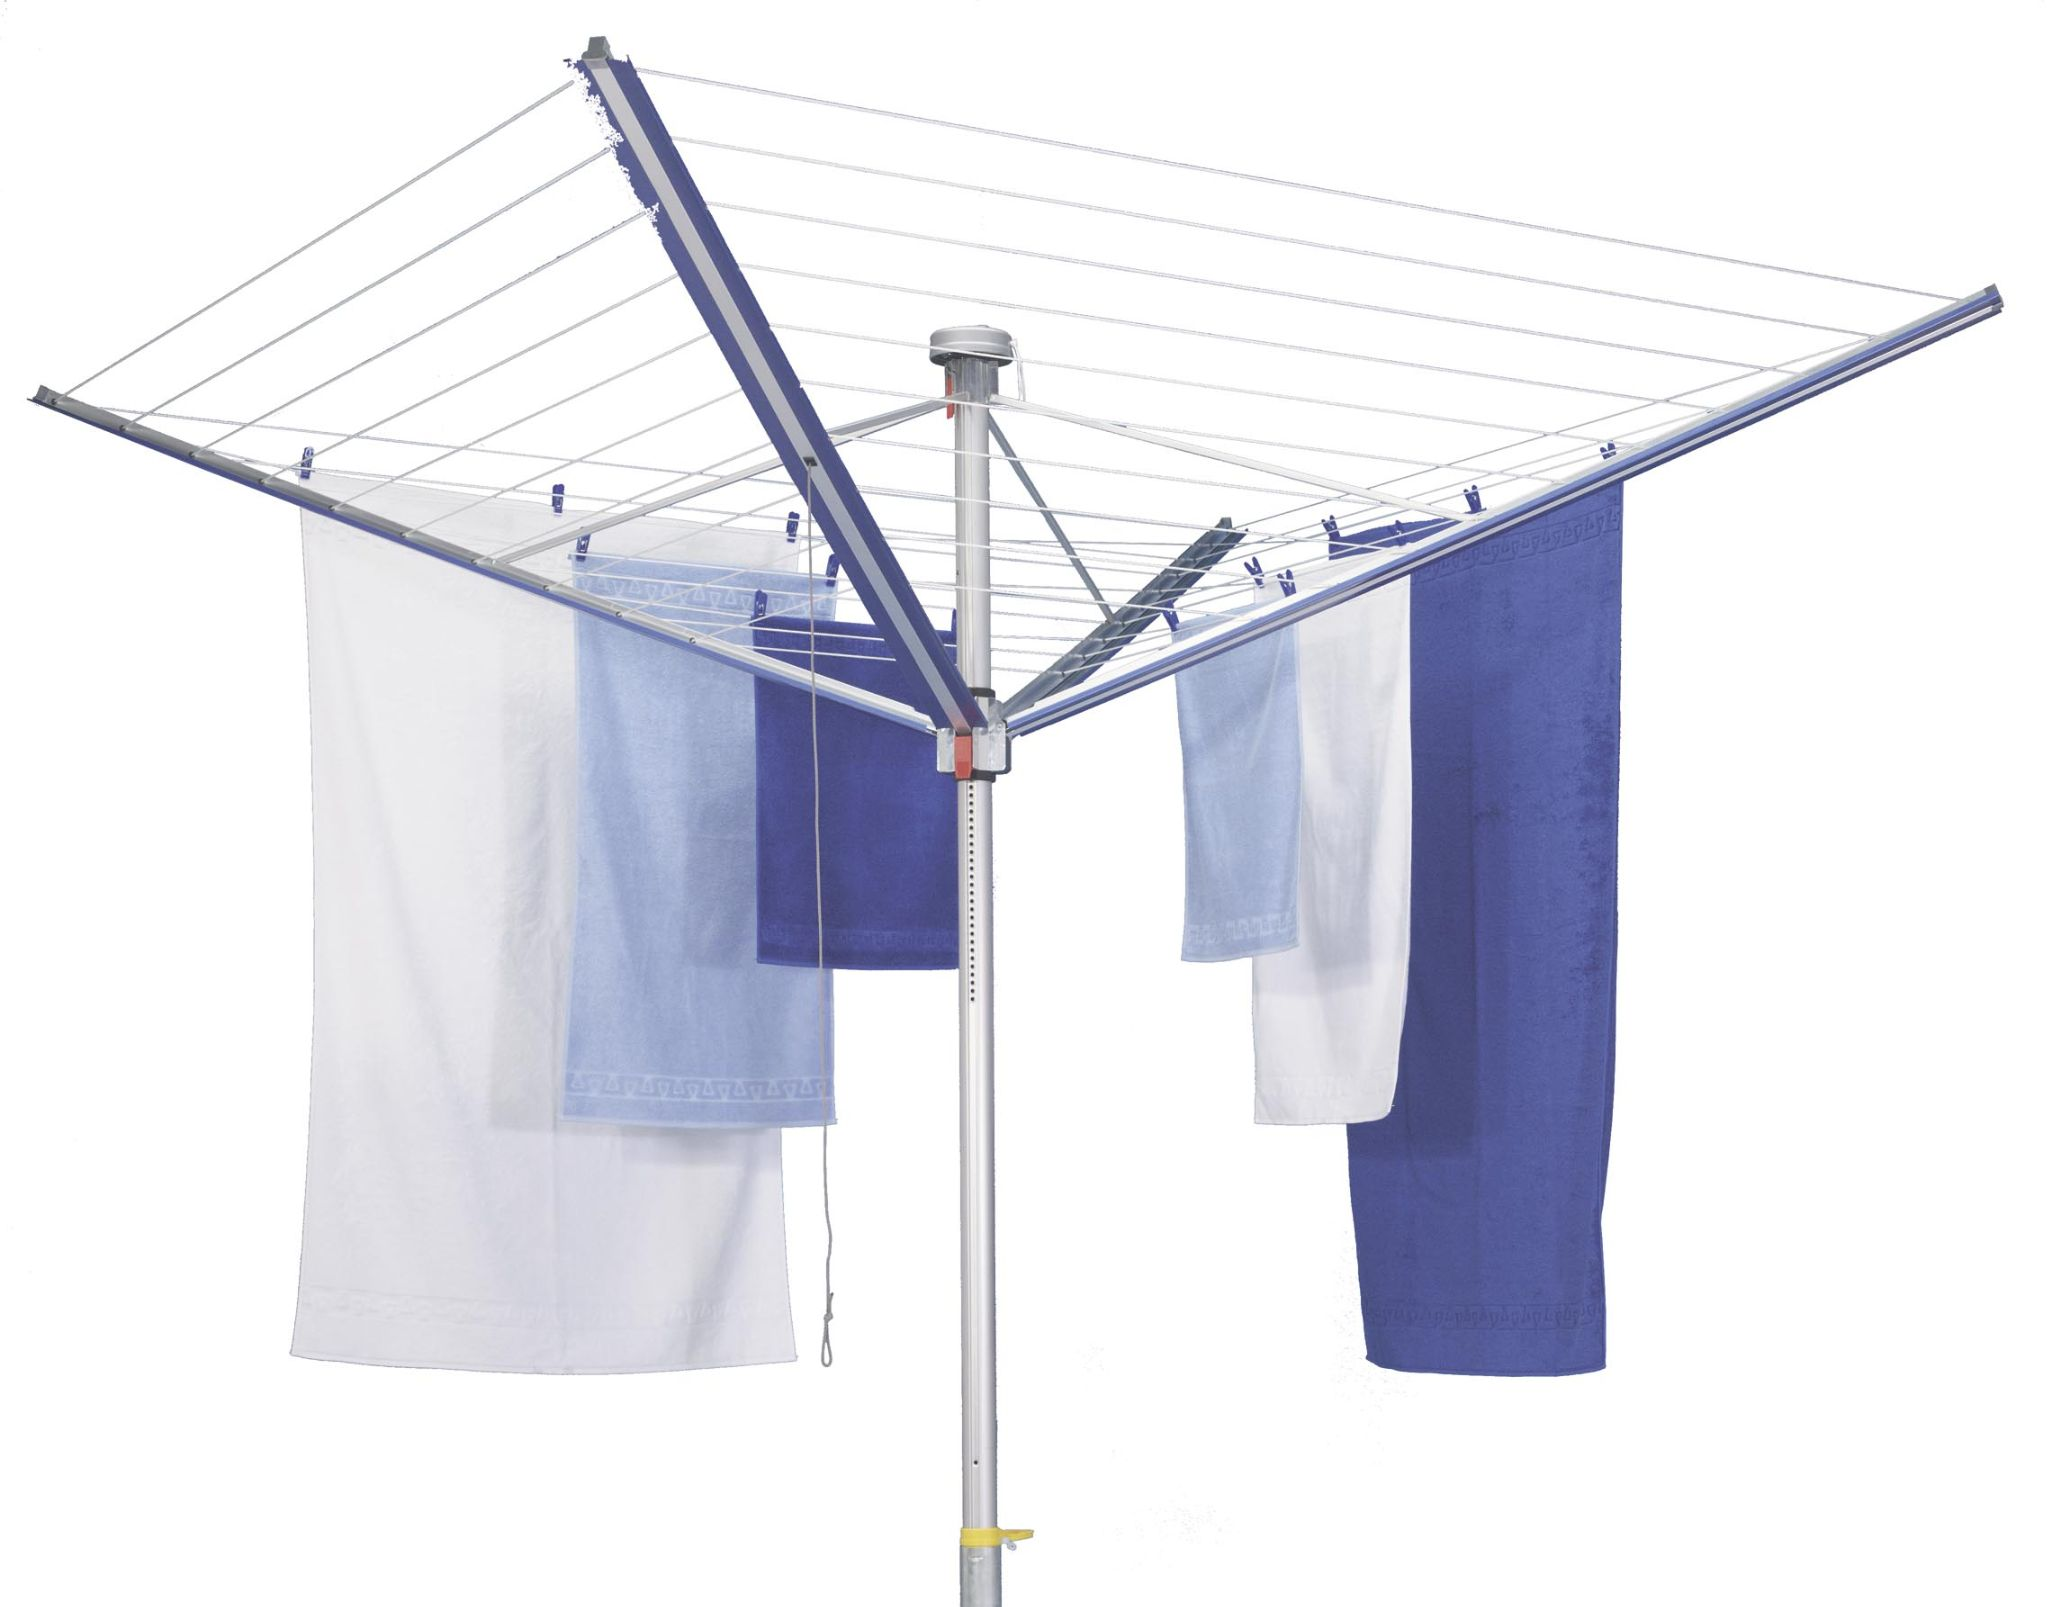 Stewi First Lady Rotary Clothes Dryer   Swiss Made!